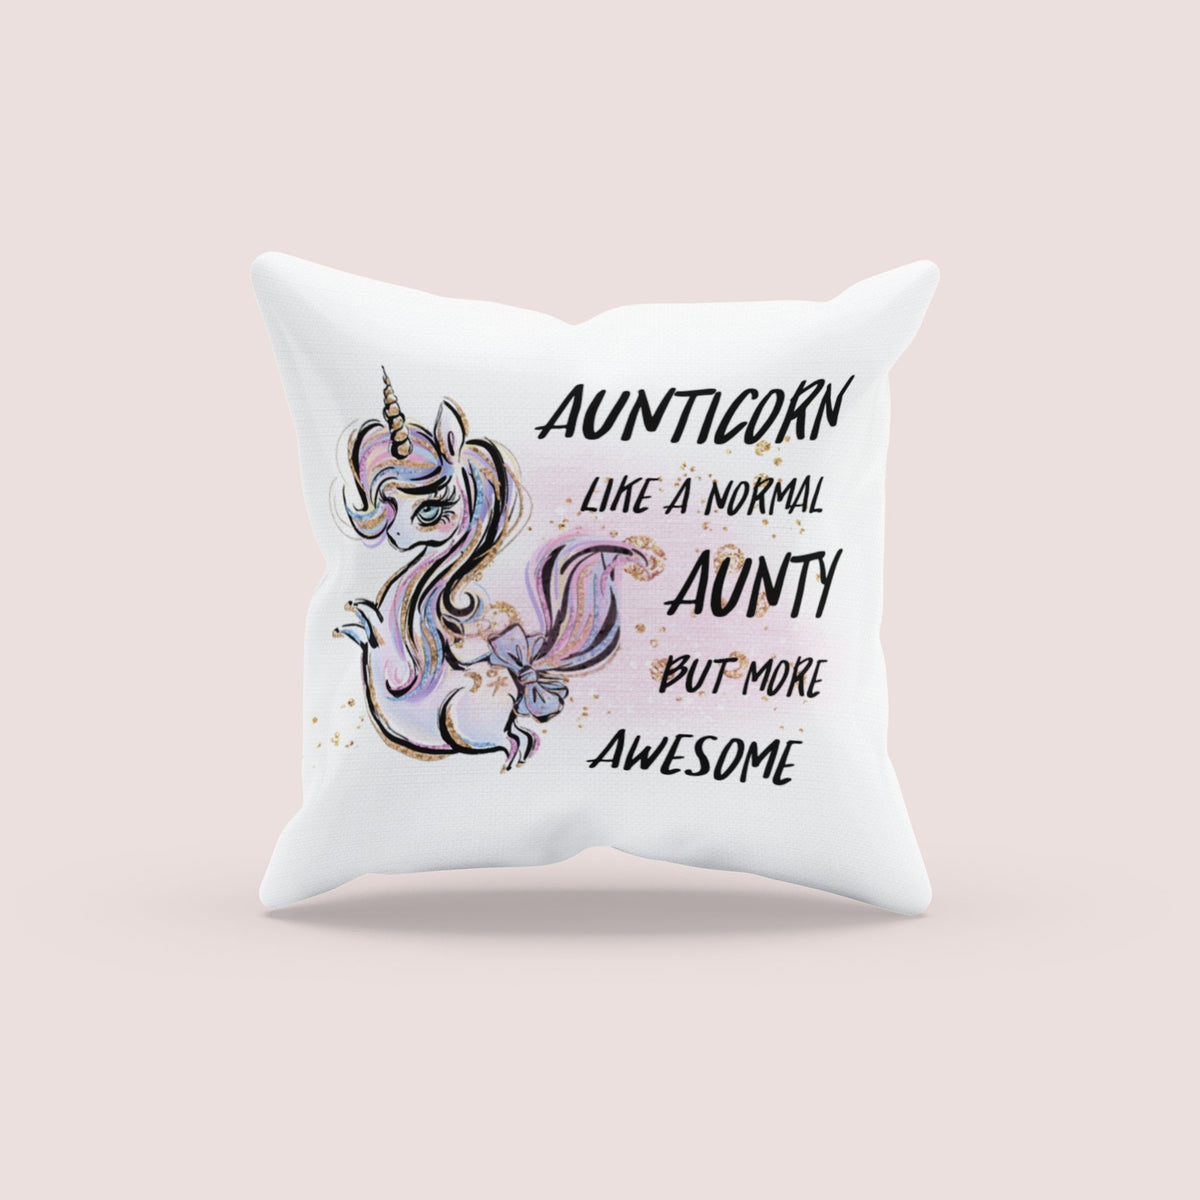 Aunticorn like a normal aunt but more awesome  - Cushion freeshipping - BCV Personalised